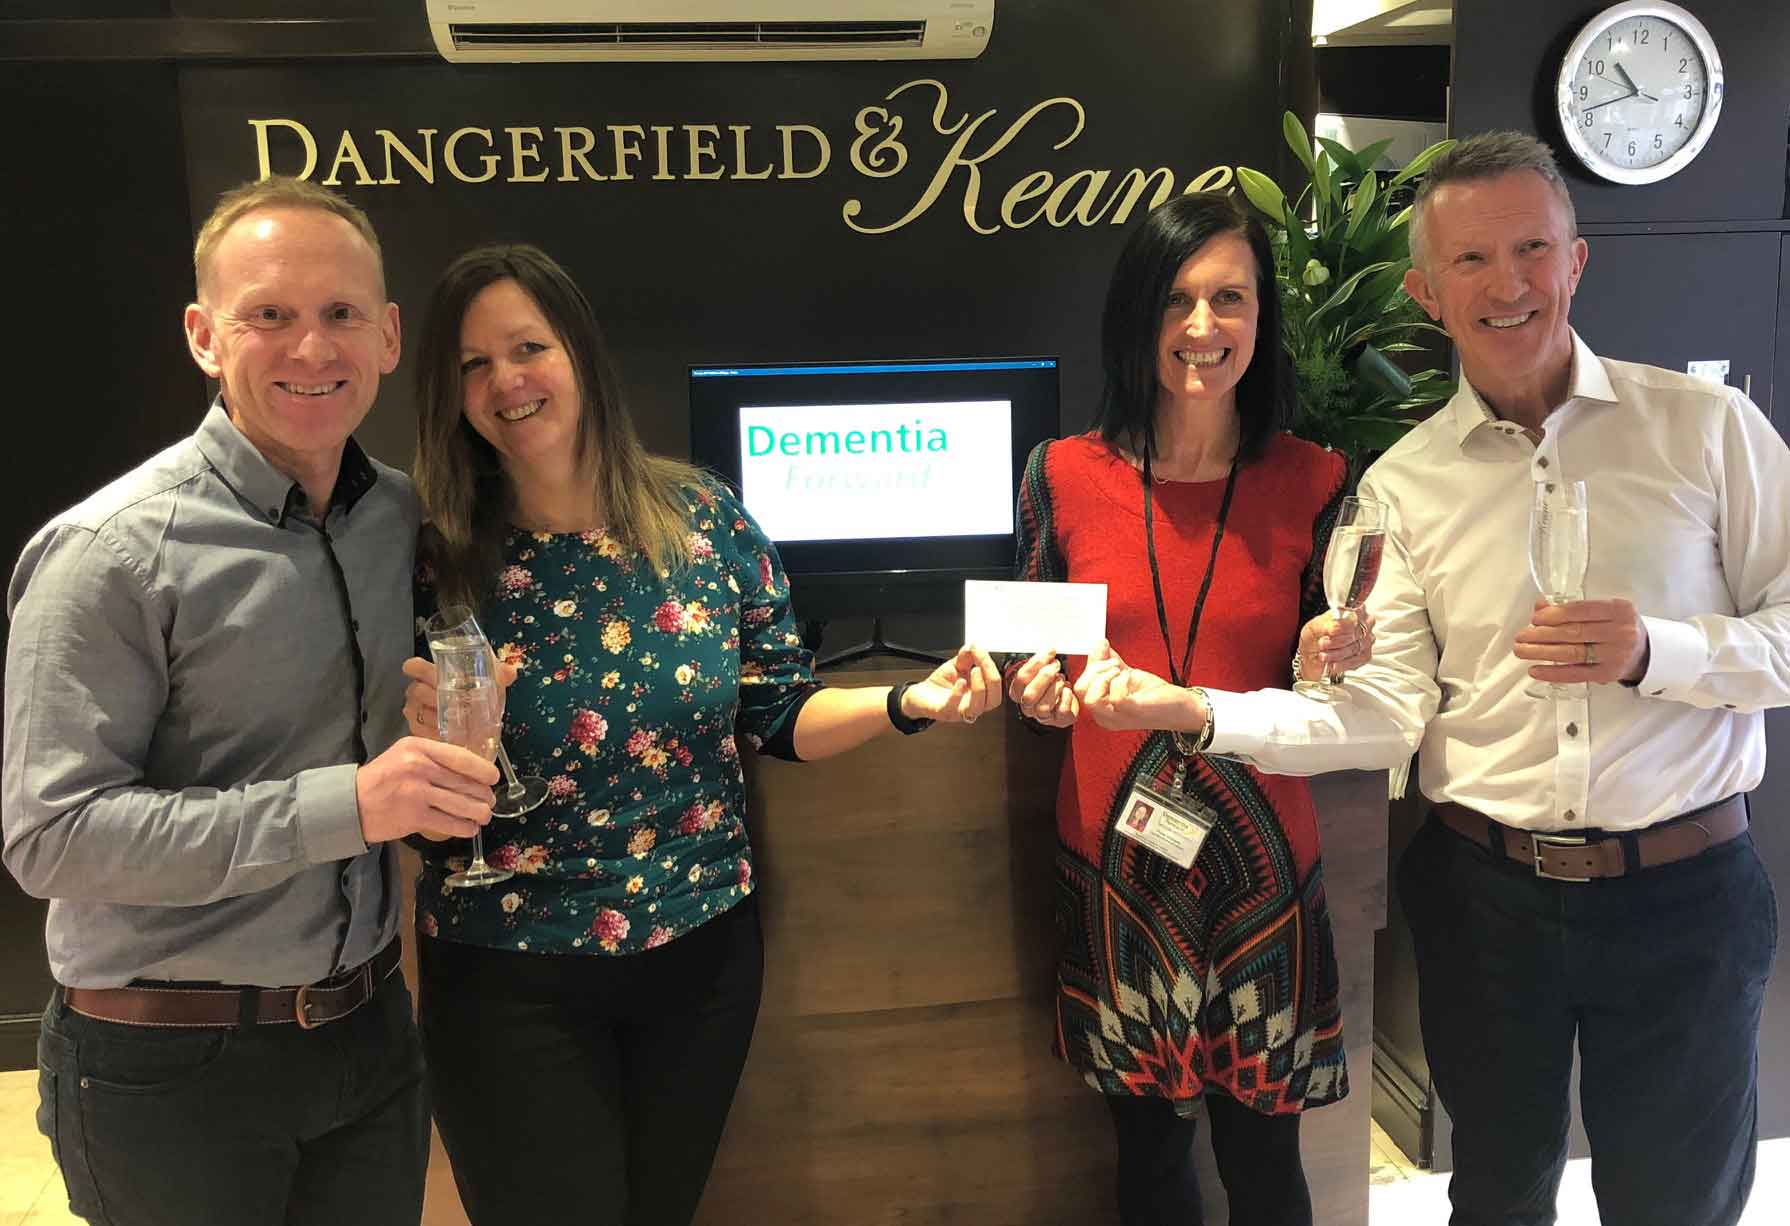 Dangerfield & Keane marks a decade in Harrogate by becoming the first dementia friendly salon